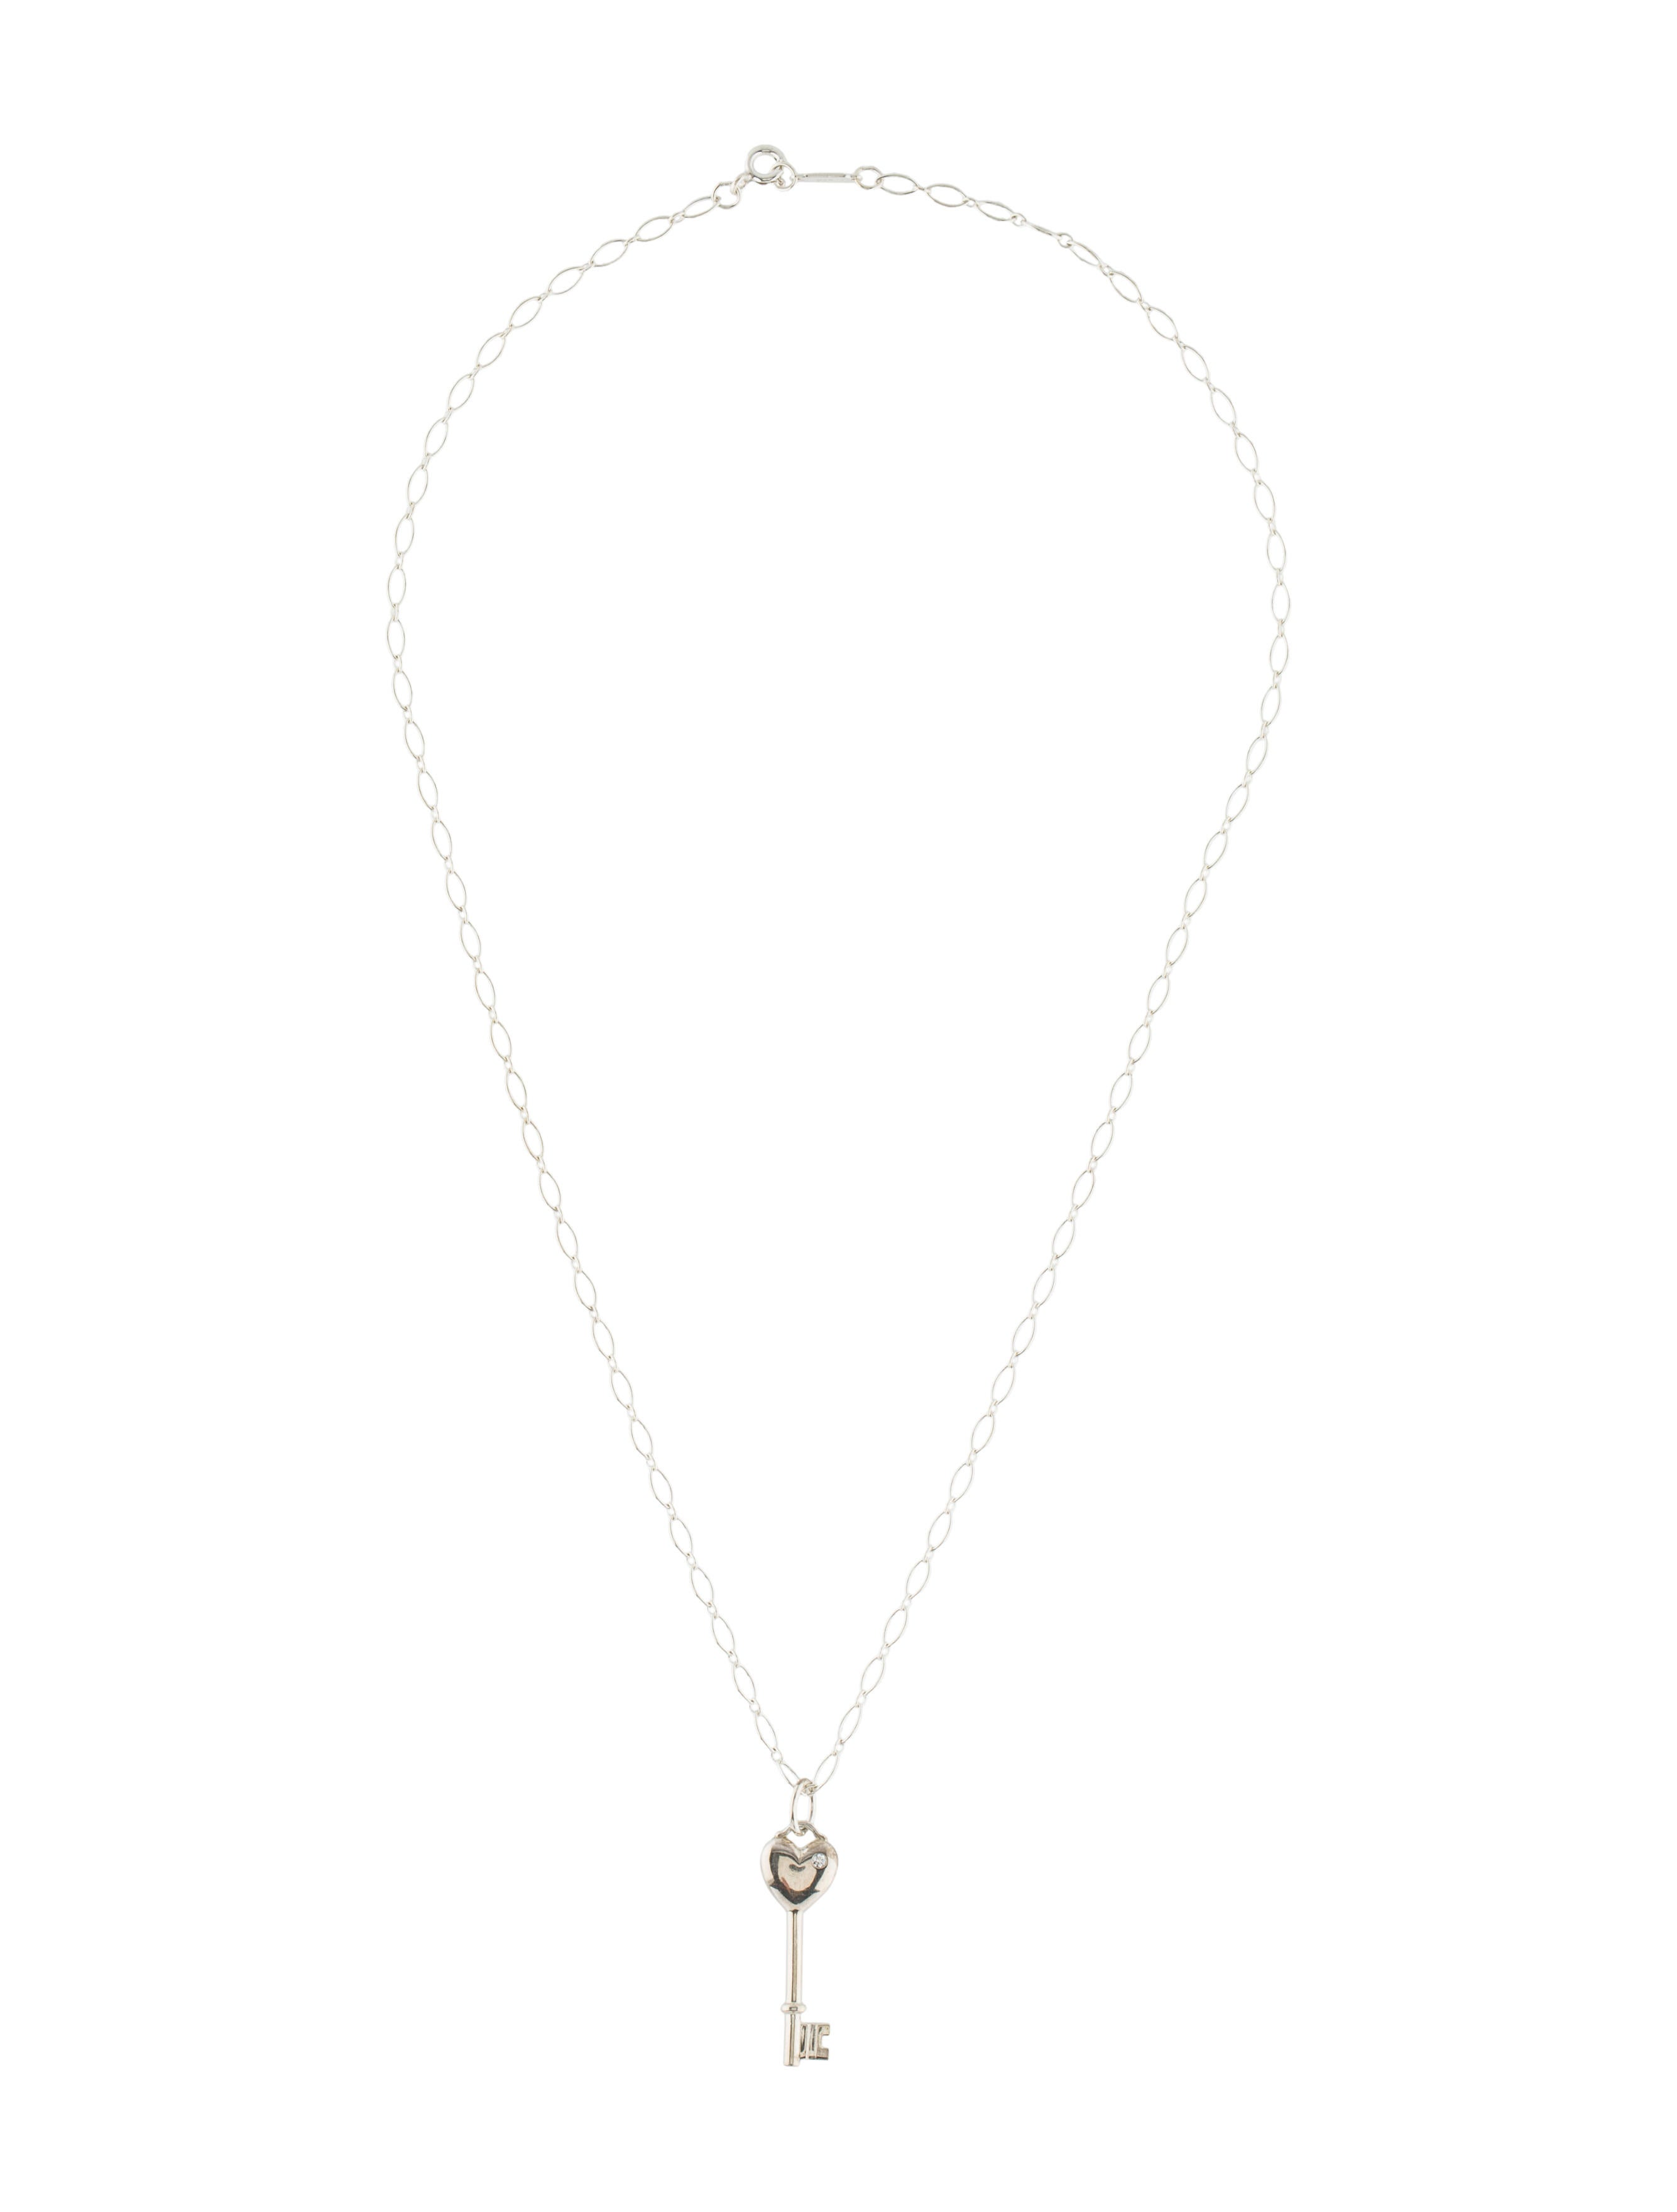 Tiffany co diamond heart key pendant necklace necklaces diamond heart key pendant necklace aloadofball Image collections